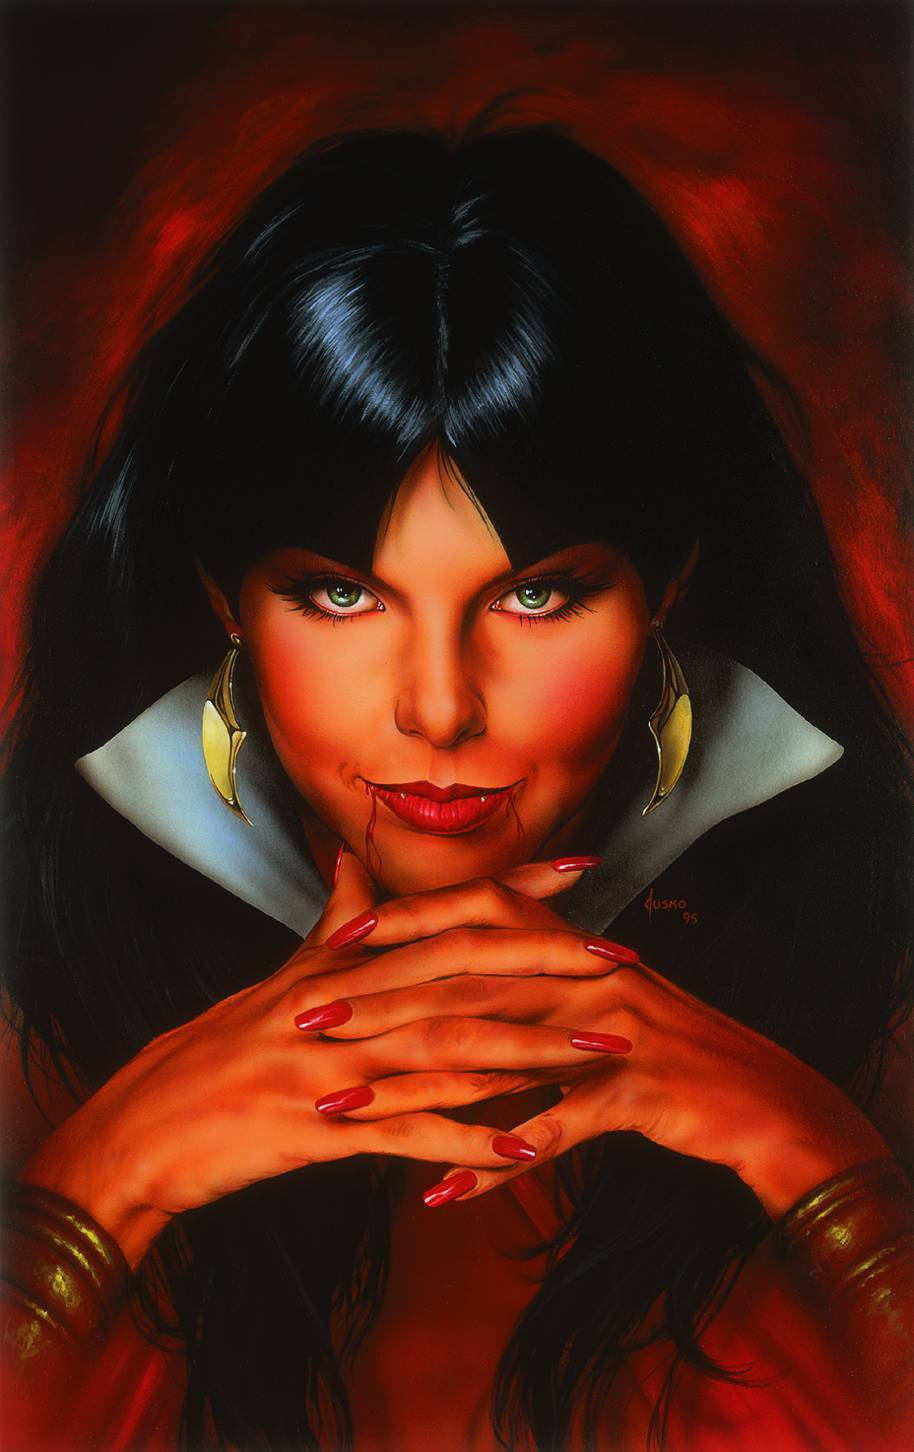 Vampirella Sad Wings Of Destiny Poster H 24 -W 20 By Joe Jusko